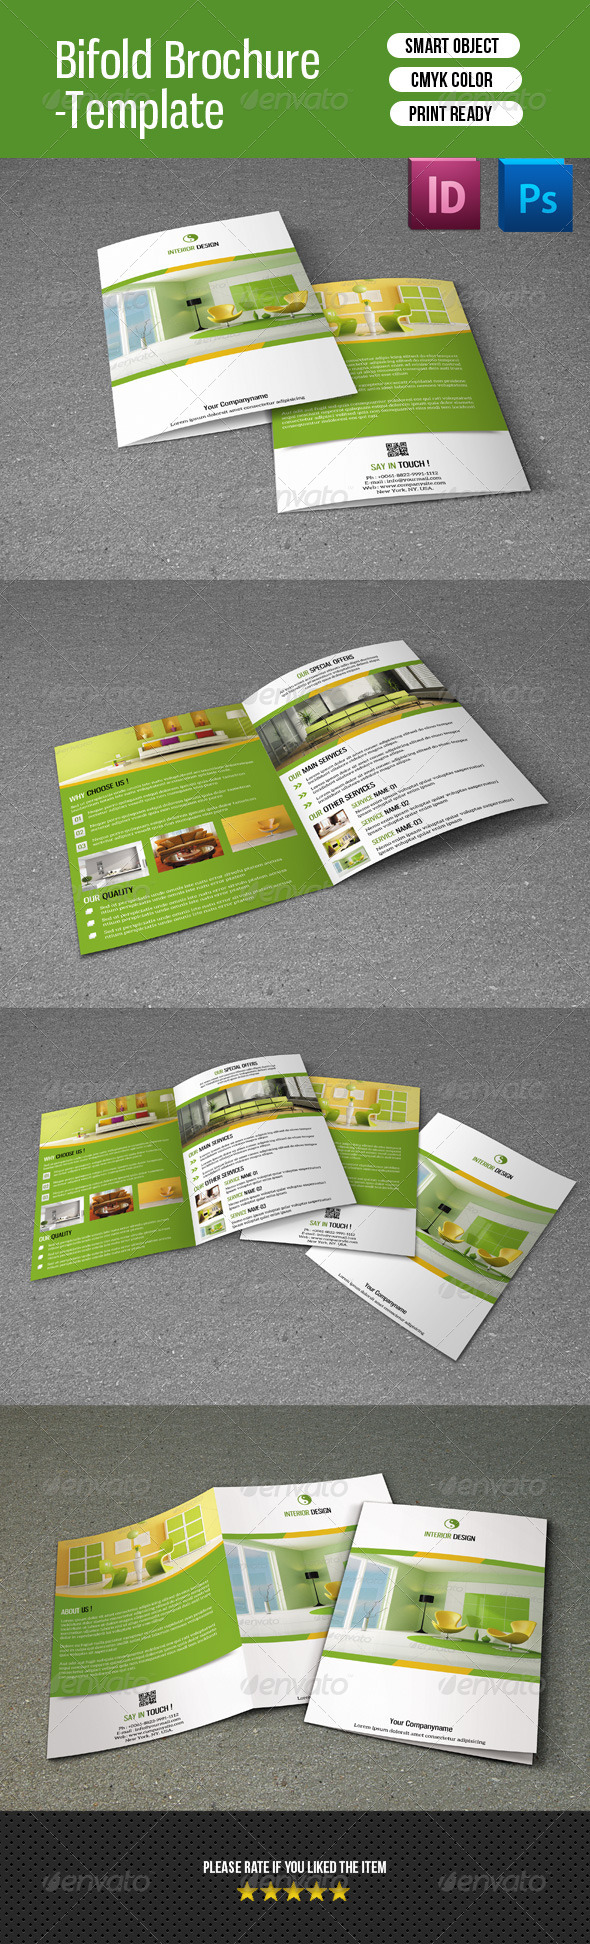 Bifold Brochure for Interior Design-V107